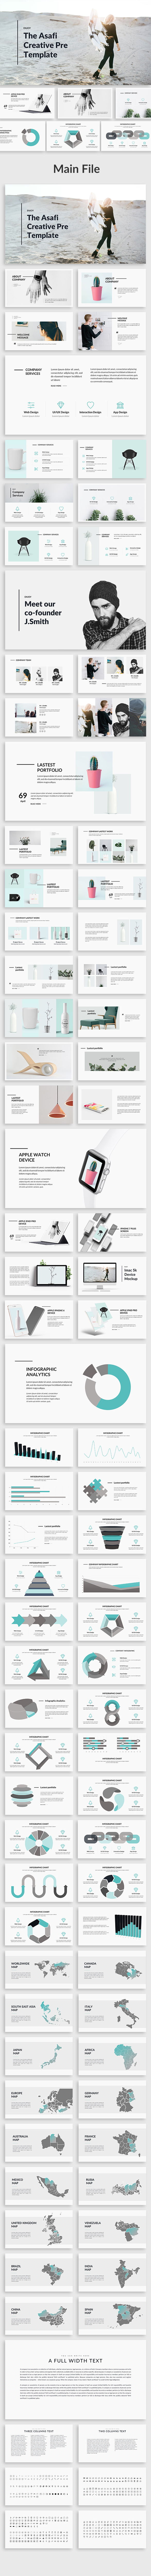 Asafi - Minimal Google Slide Template - Google Slides Presentation Templates